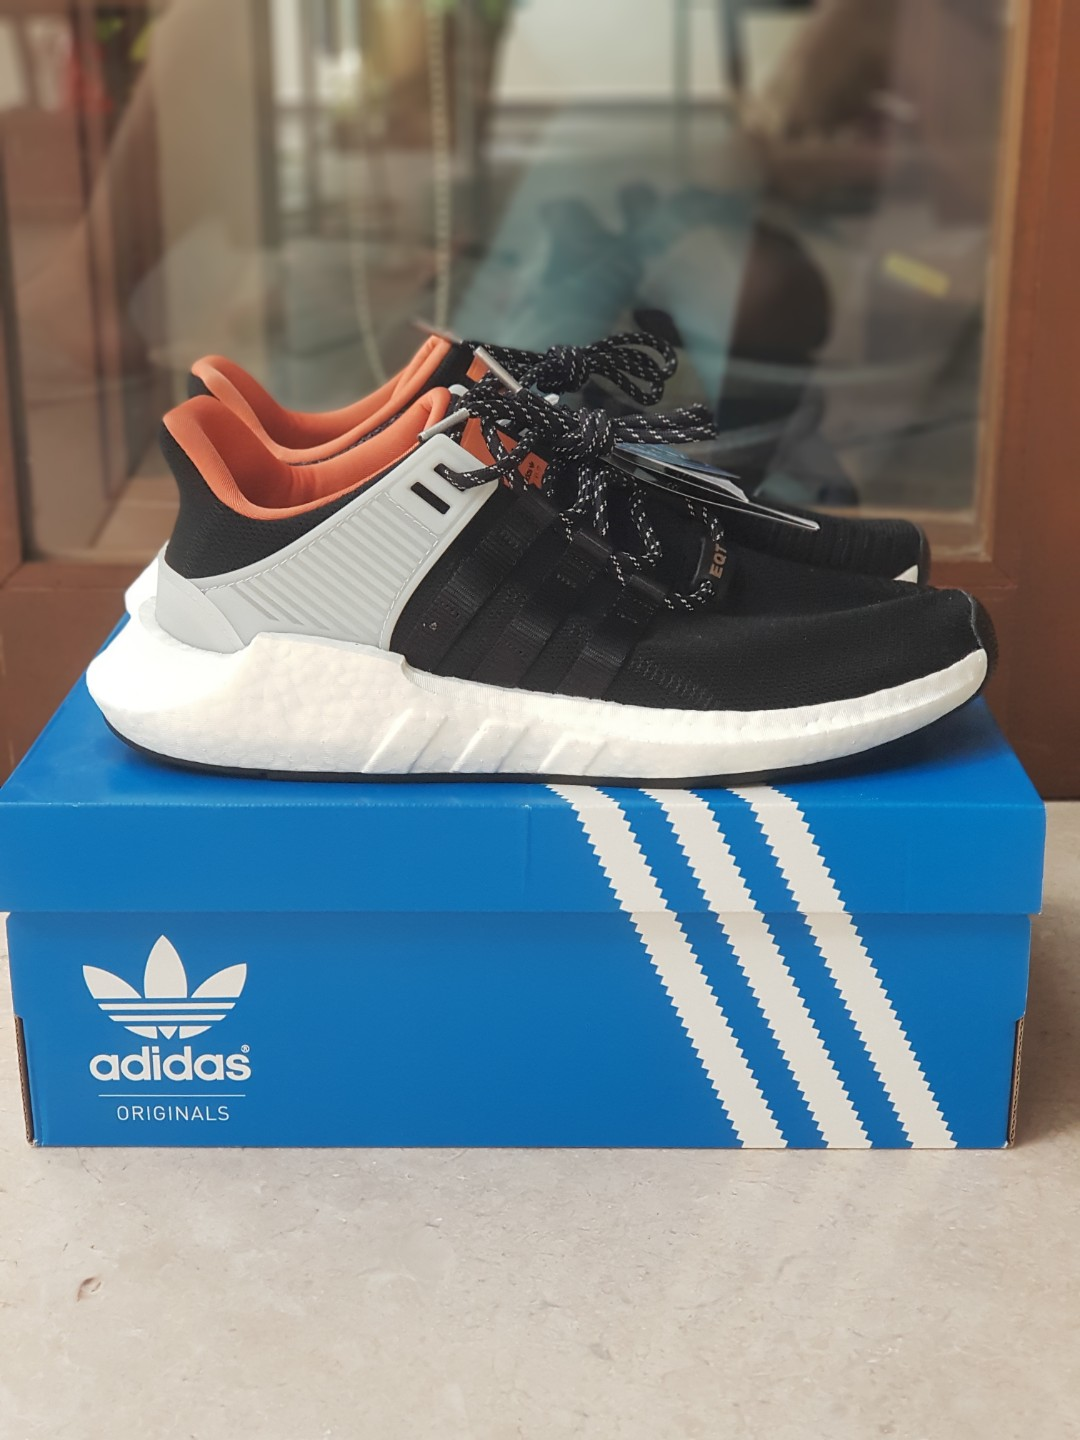 check out 830ab 41308 Adidas Eqt Support 9317 Boost Welding Pack, Mens Fashion, Fo